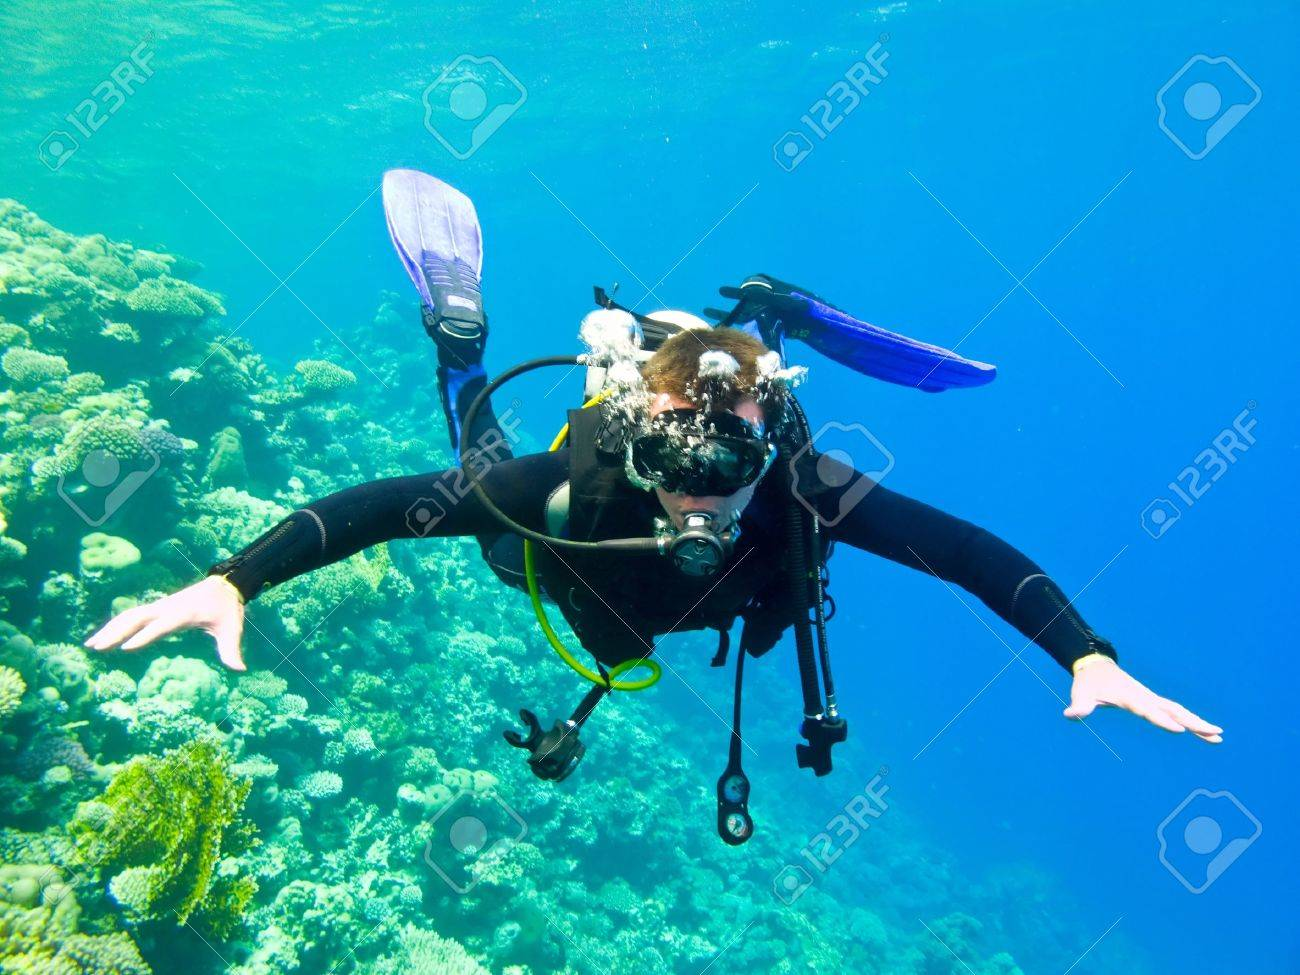 Scuba diver under water in the red sea. - 11312576